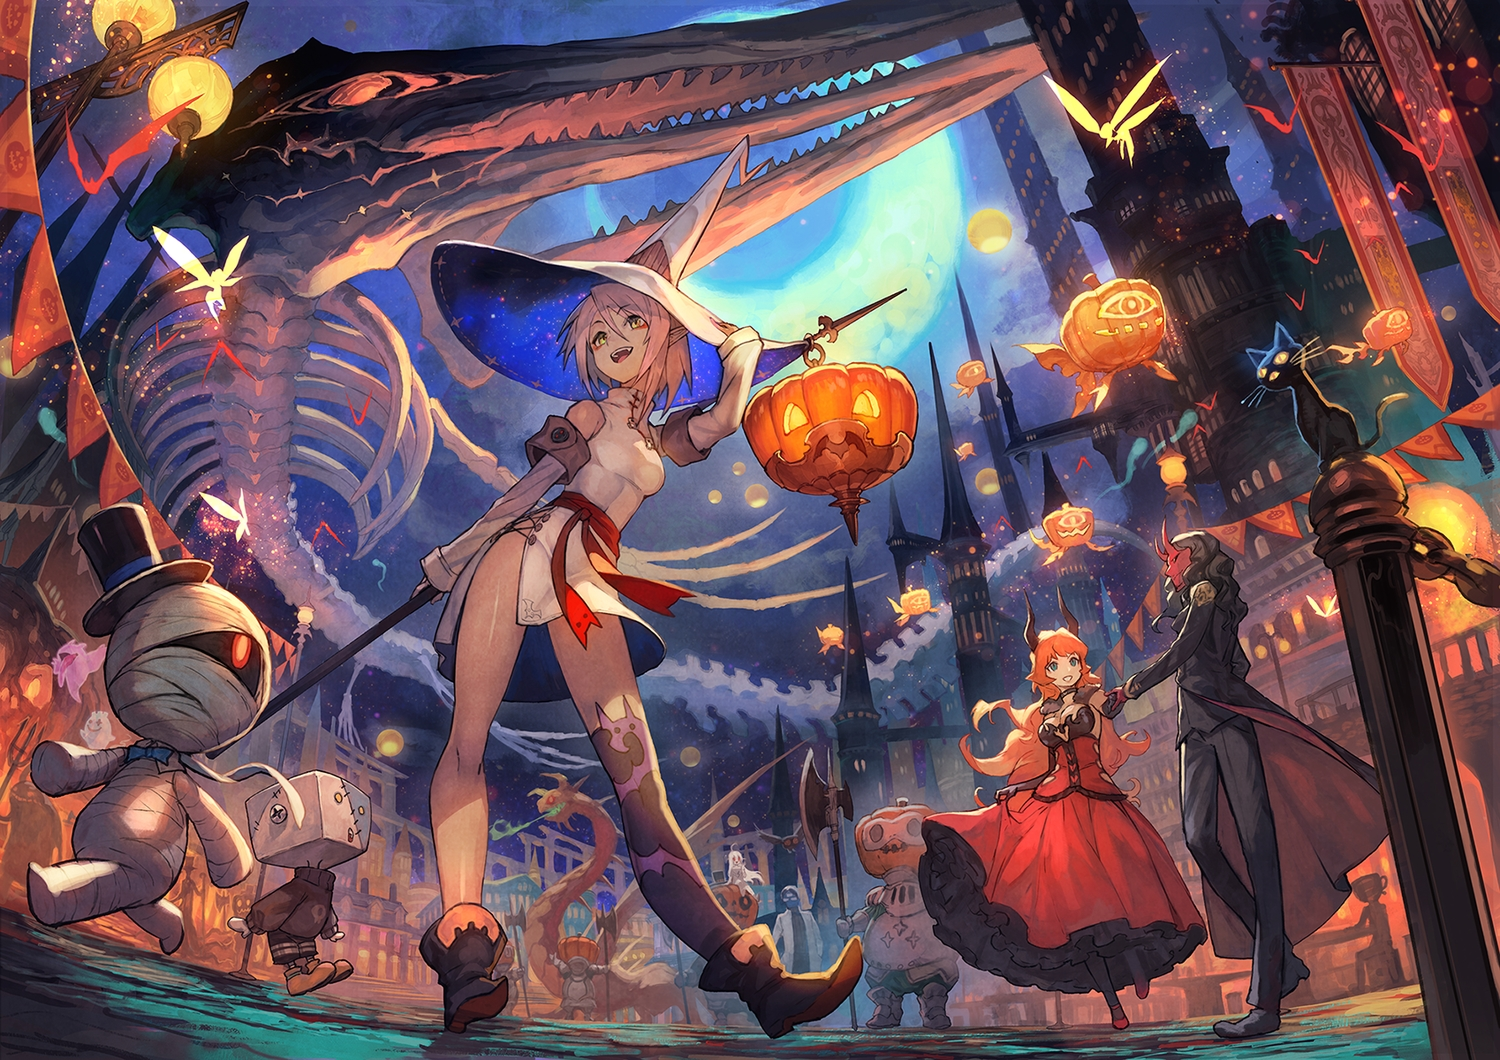 animal aqua_eyes armor bandage black_hair bones boots breasts building butterfly cat chinese_clothes chinese_dress city demon dragon dress elbow_gloves fairy fish glasses gloves group halloween hat horns lack loli long_hair male mask moon night orange_hair original pink_hair pointed_ears pumpkin red_eyes short_hair skirt_lift skull sky spear thighhighs weapon white_hair witch witch_hat yellow_eyes